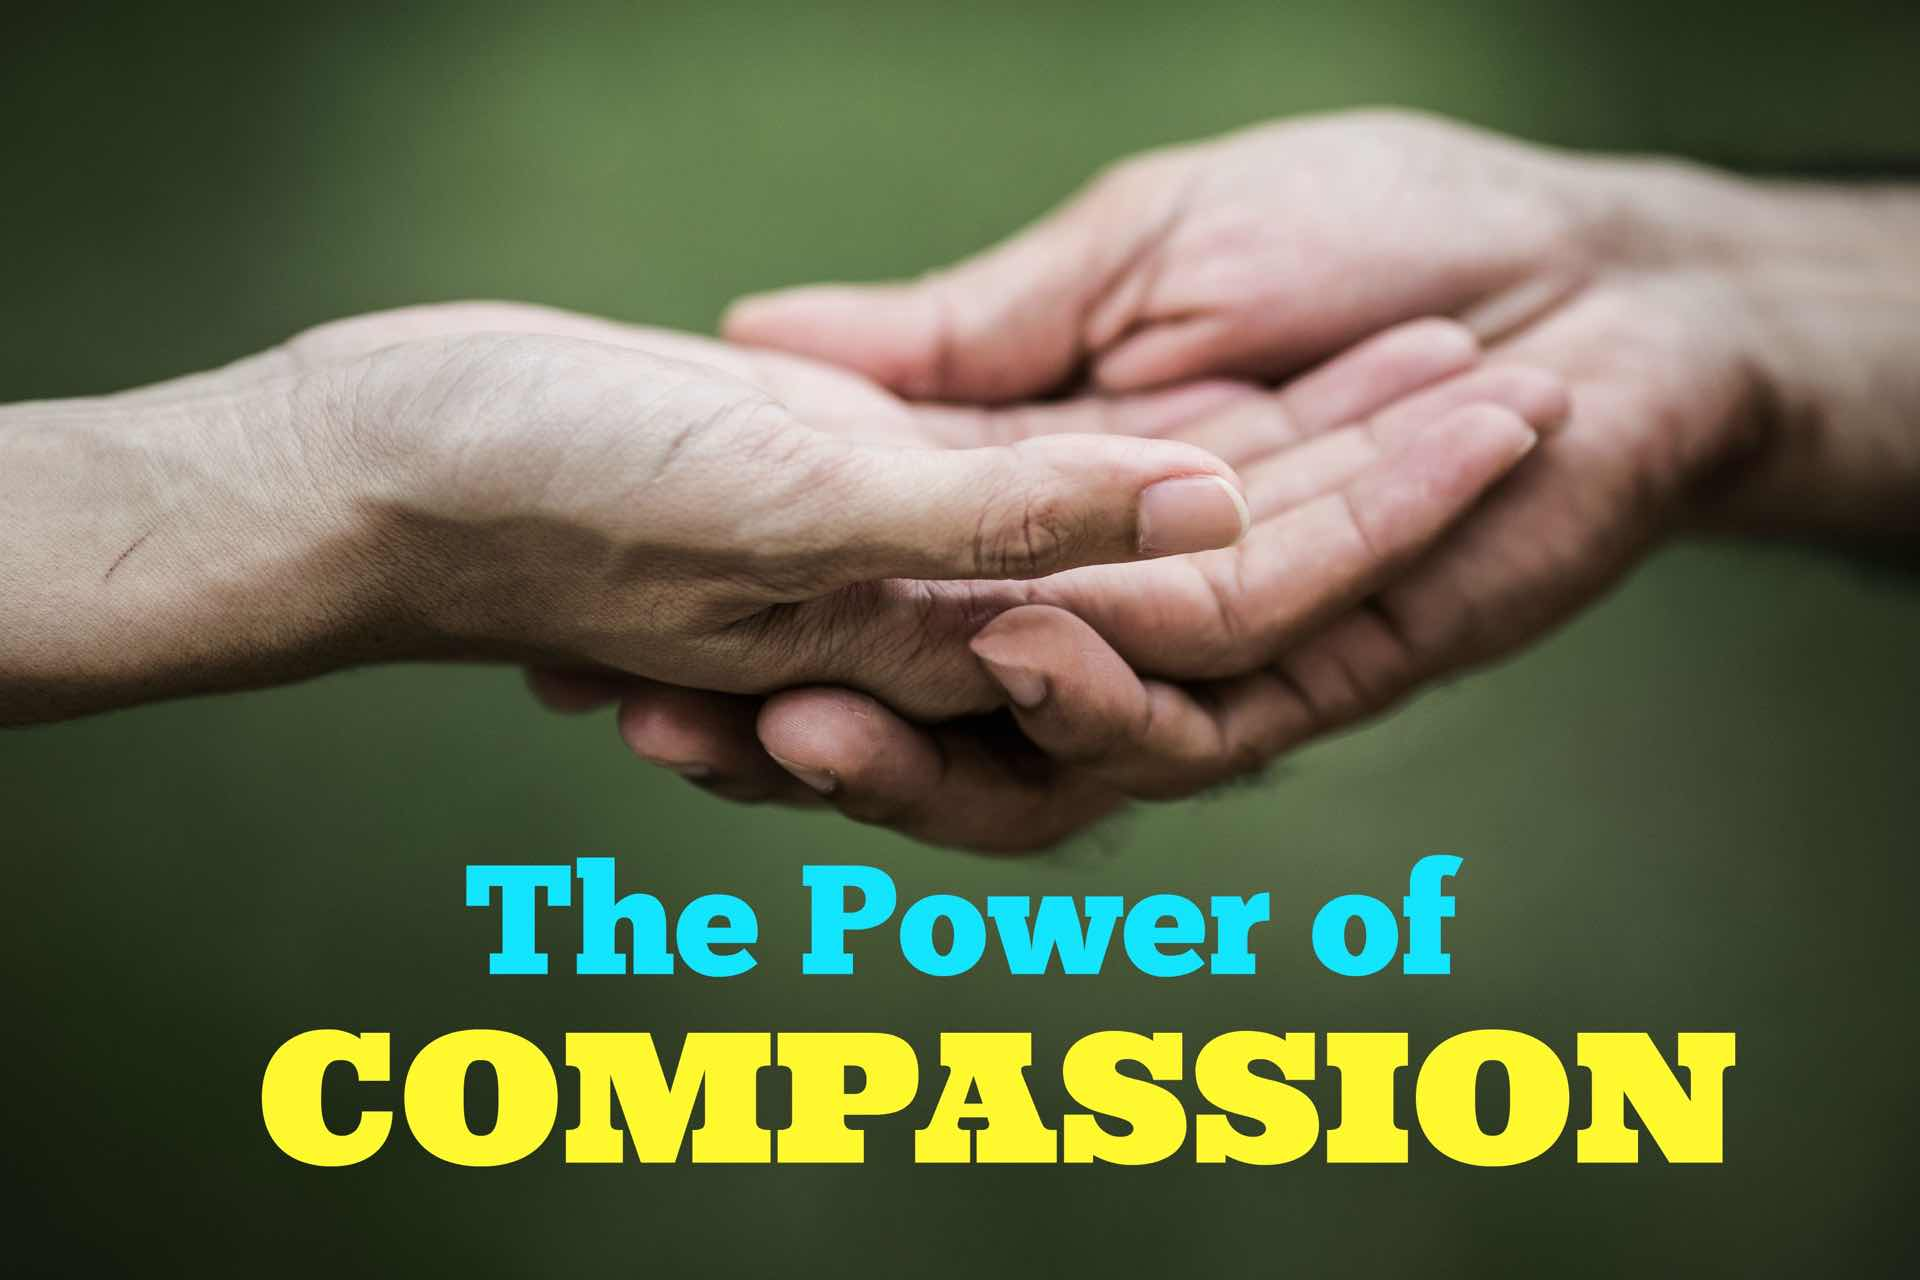 Using Compassion to fight Bullying and Harassment